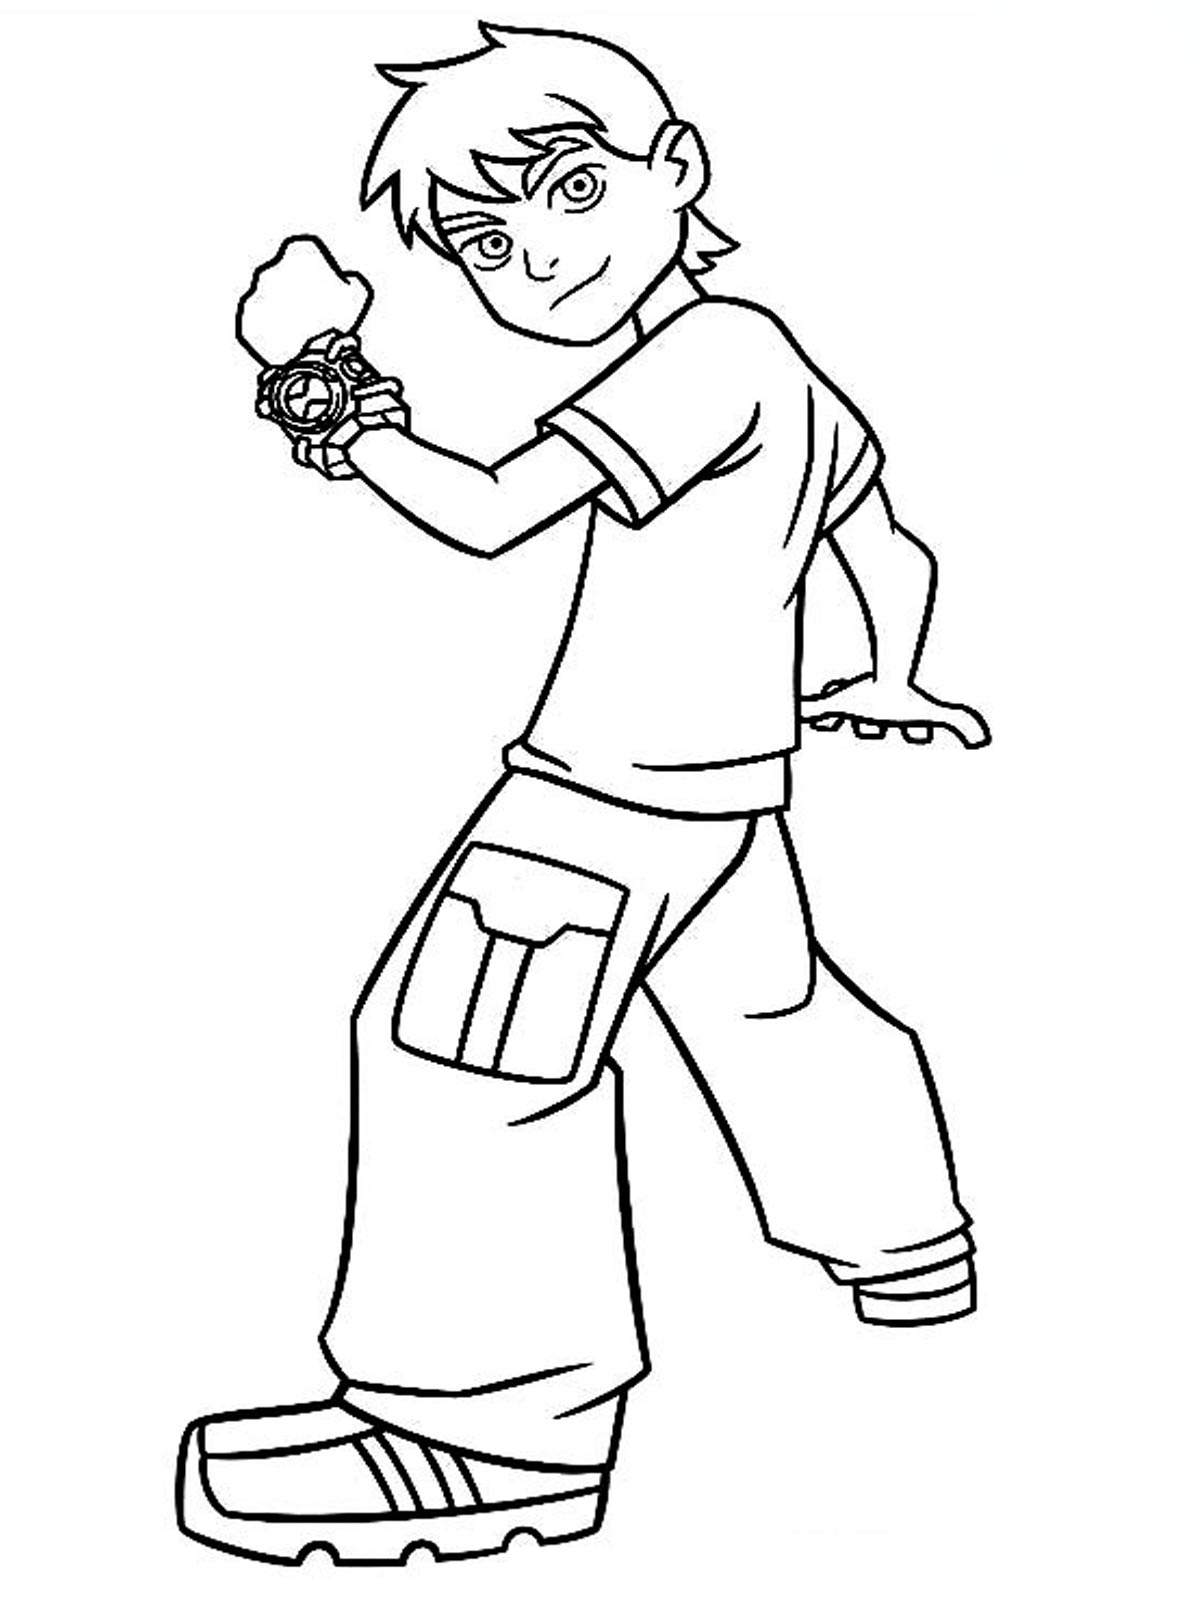 Free coloring pages for young adults - Coloring Pages For Young Adults Coloring Pages Adults Christmas Coloring Pages Young Adults